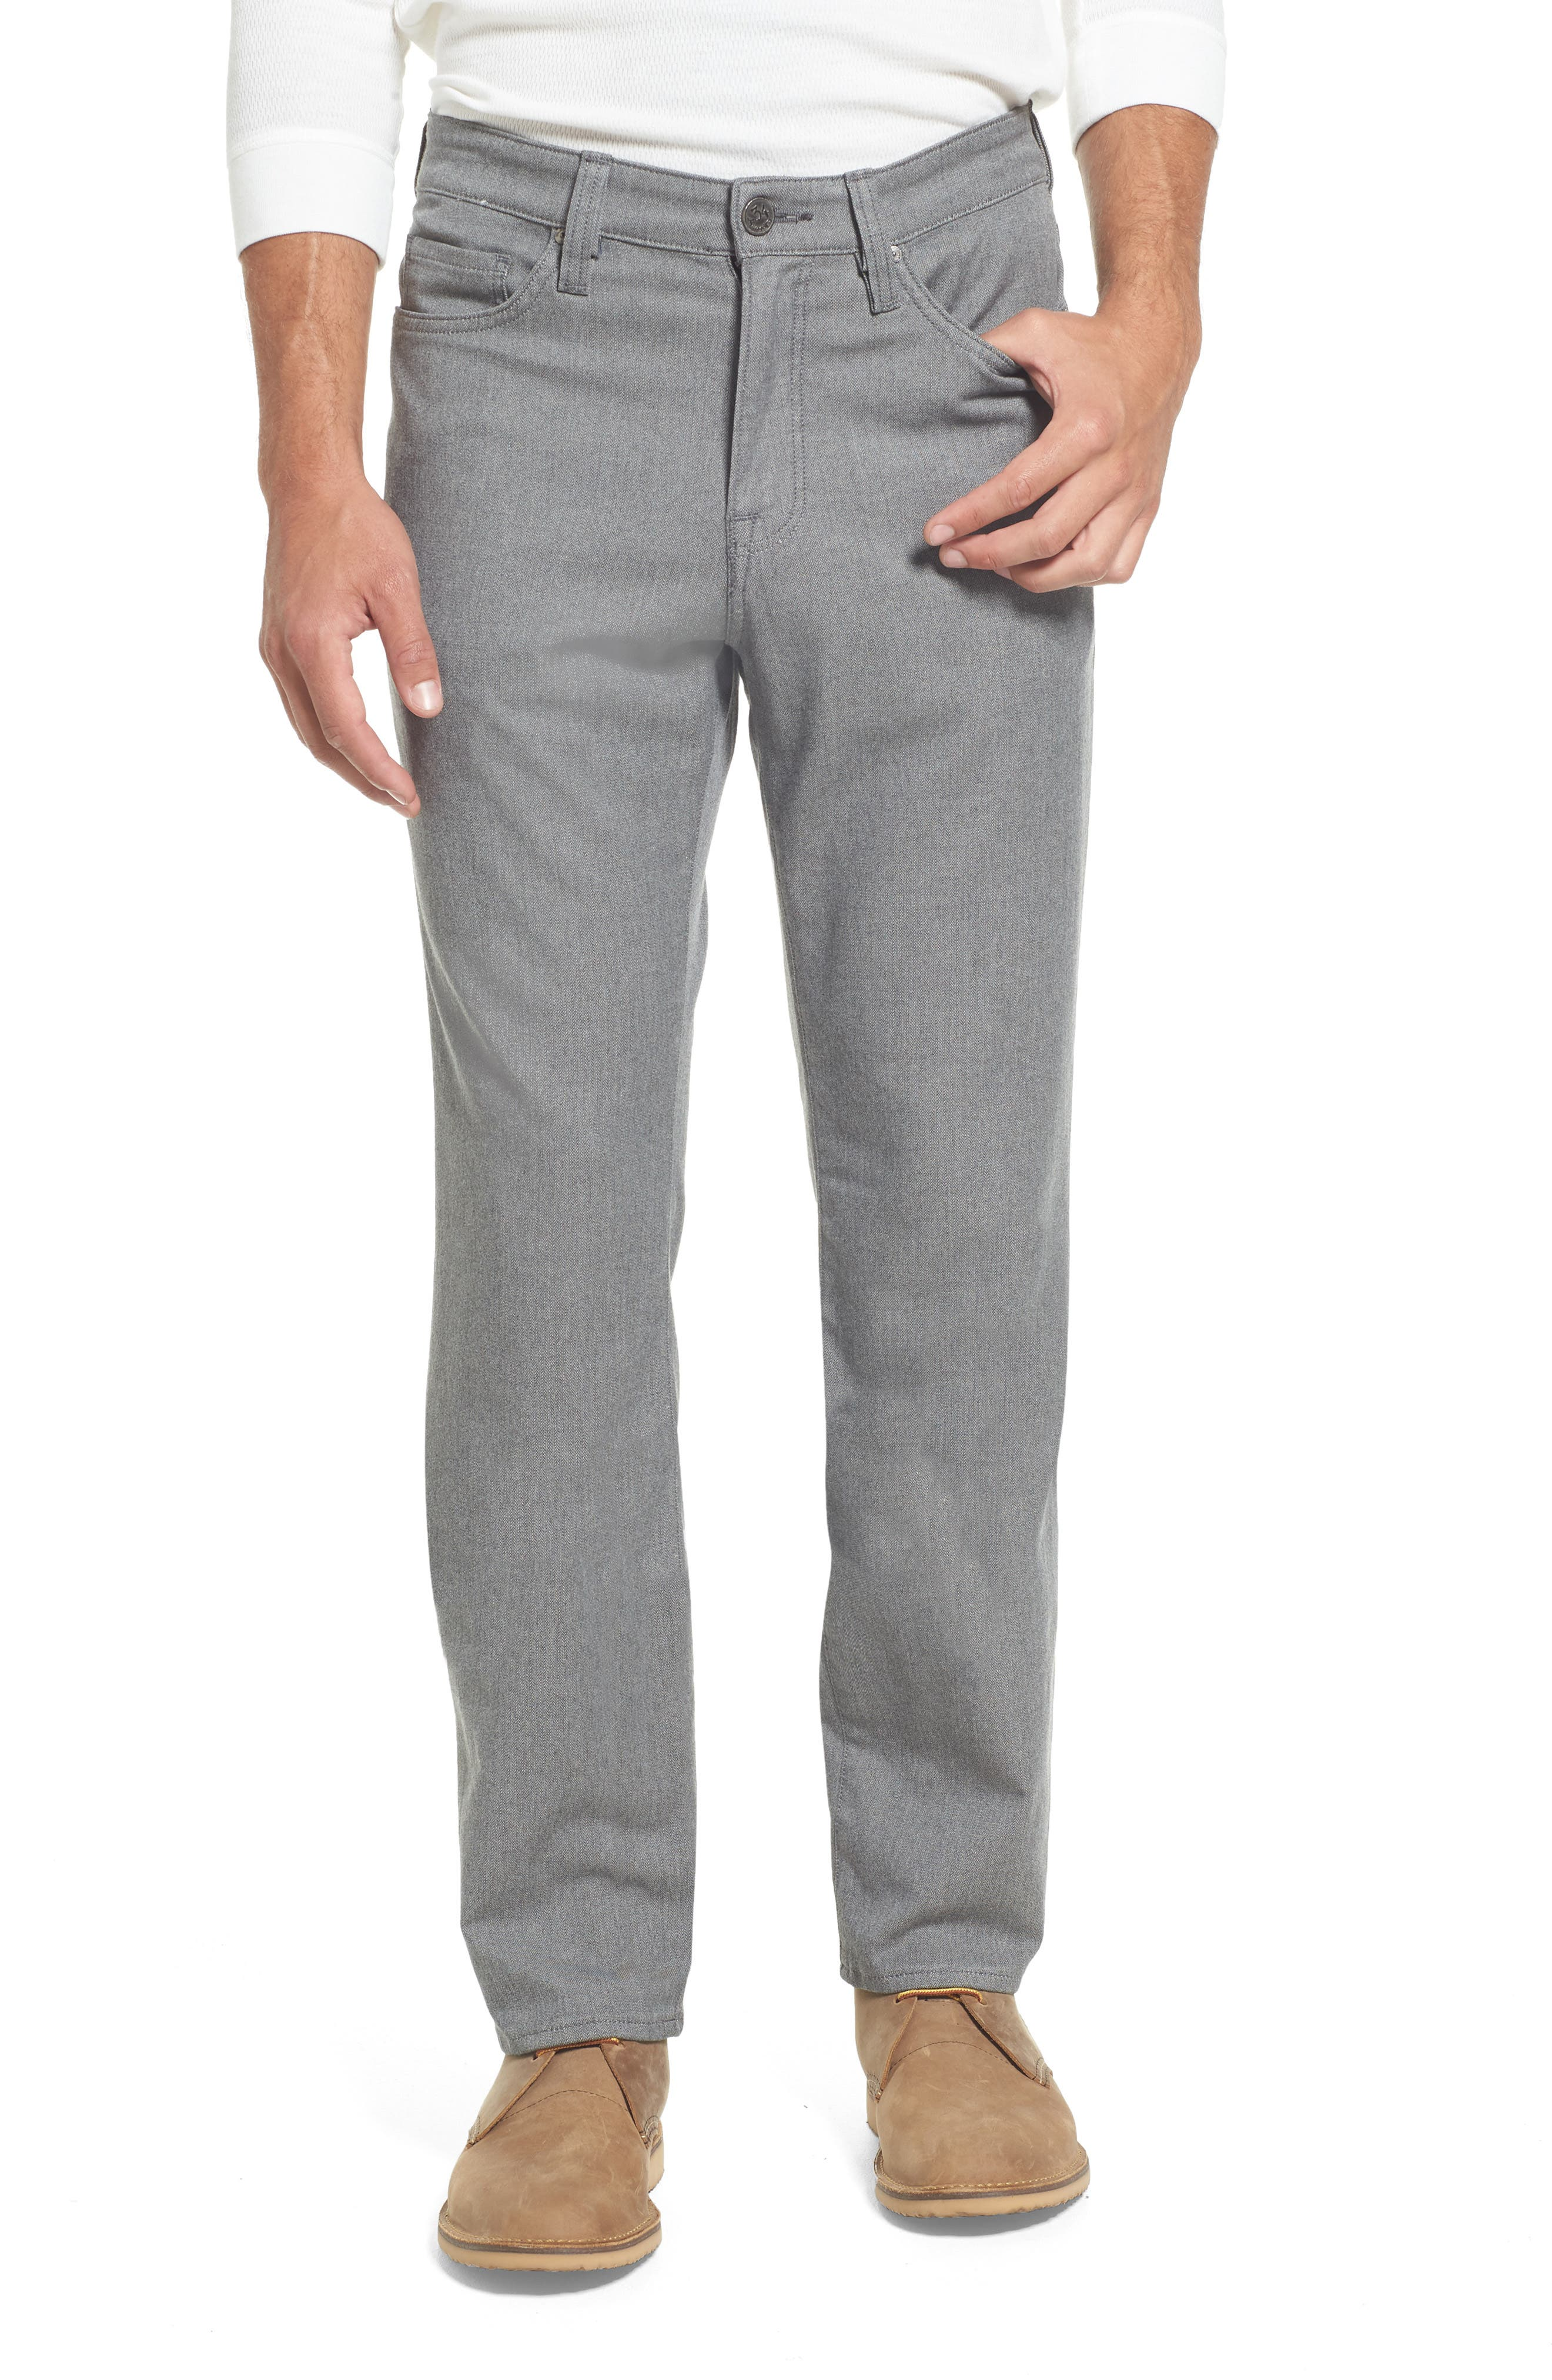 Charisma Relaxed Fit Jeans,                             Main thumbnail 1, color,                             020